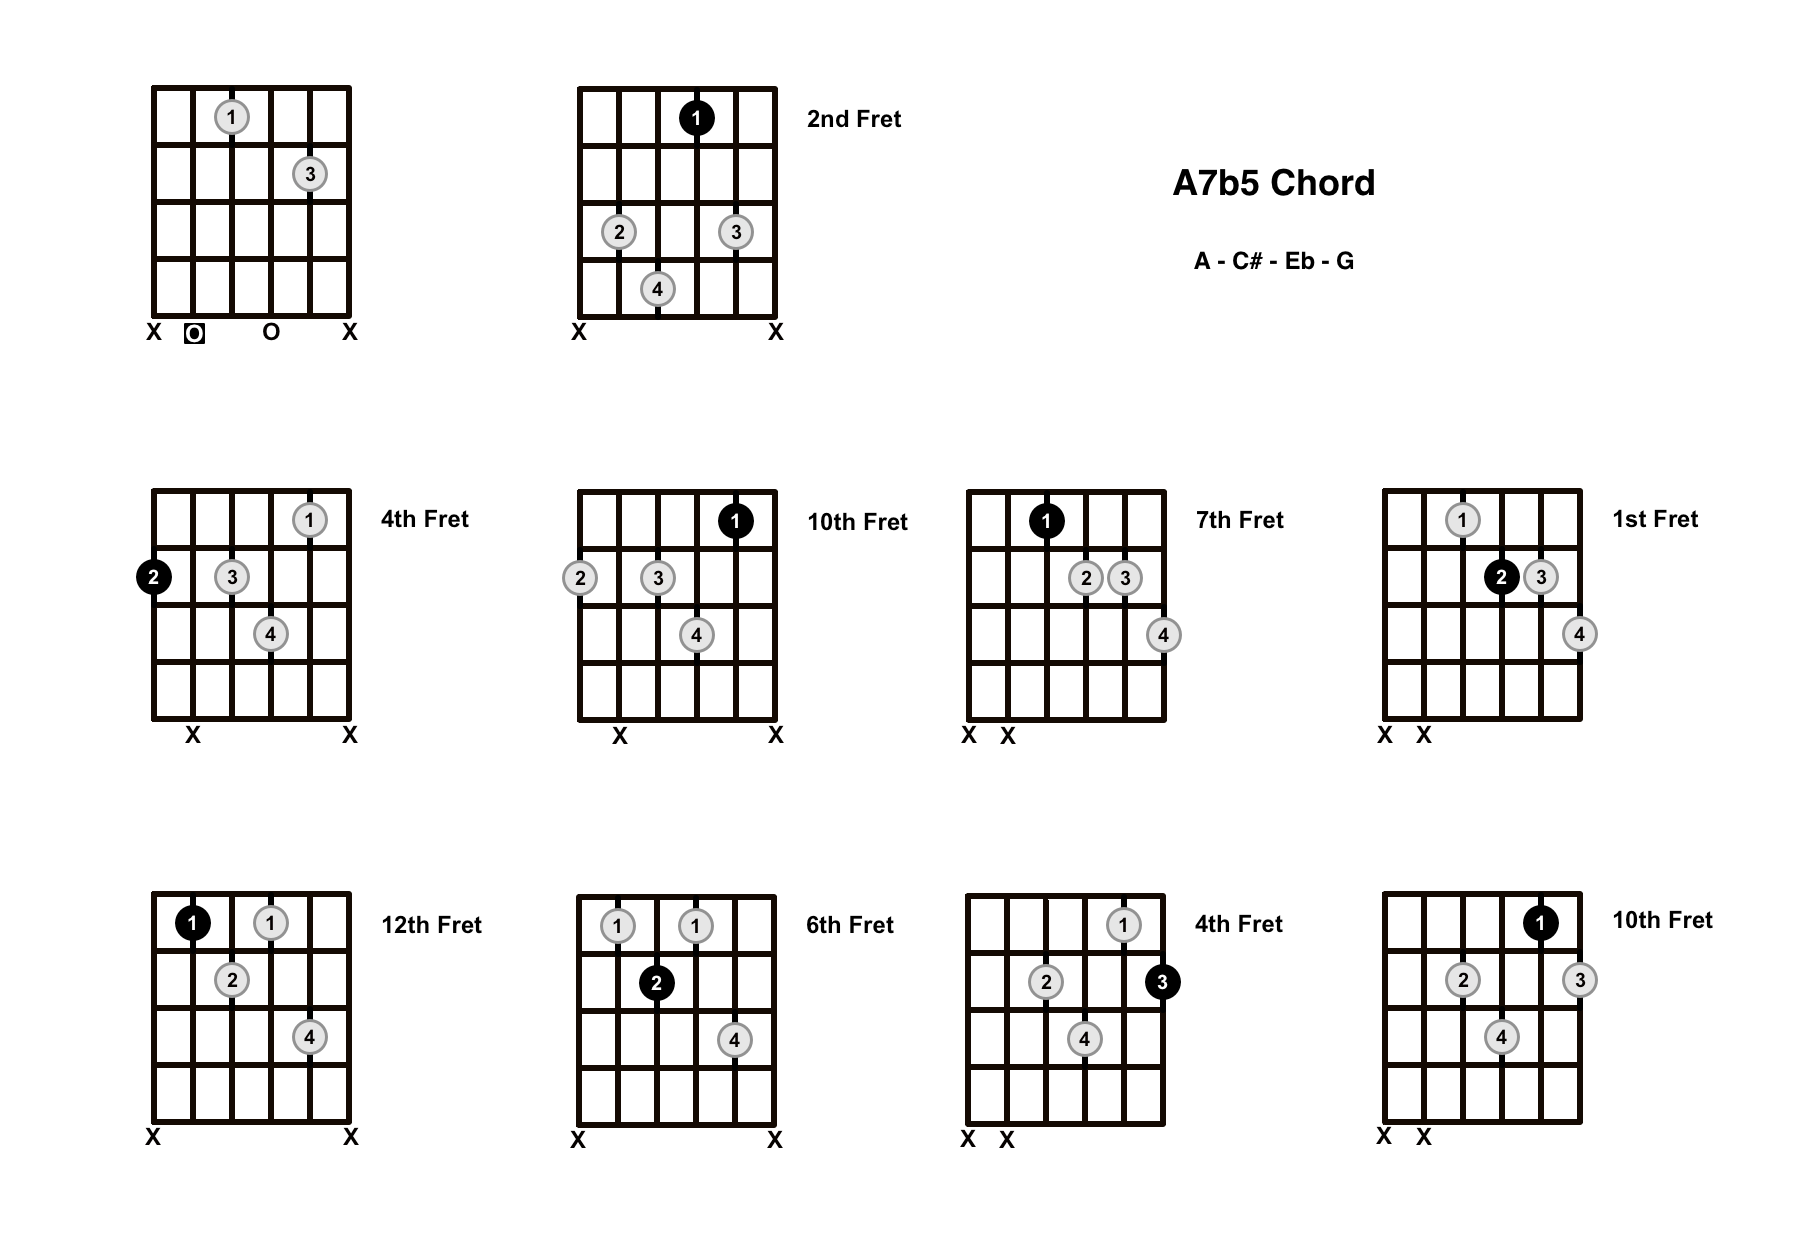 A7b5 Chord On The Guitar (A Dominant 7 Flat 5) – Diagrams, Finger Positions and Theory